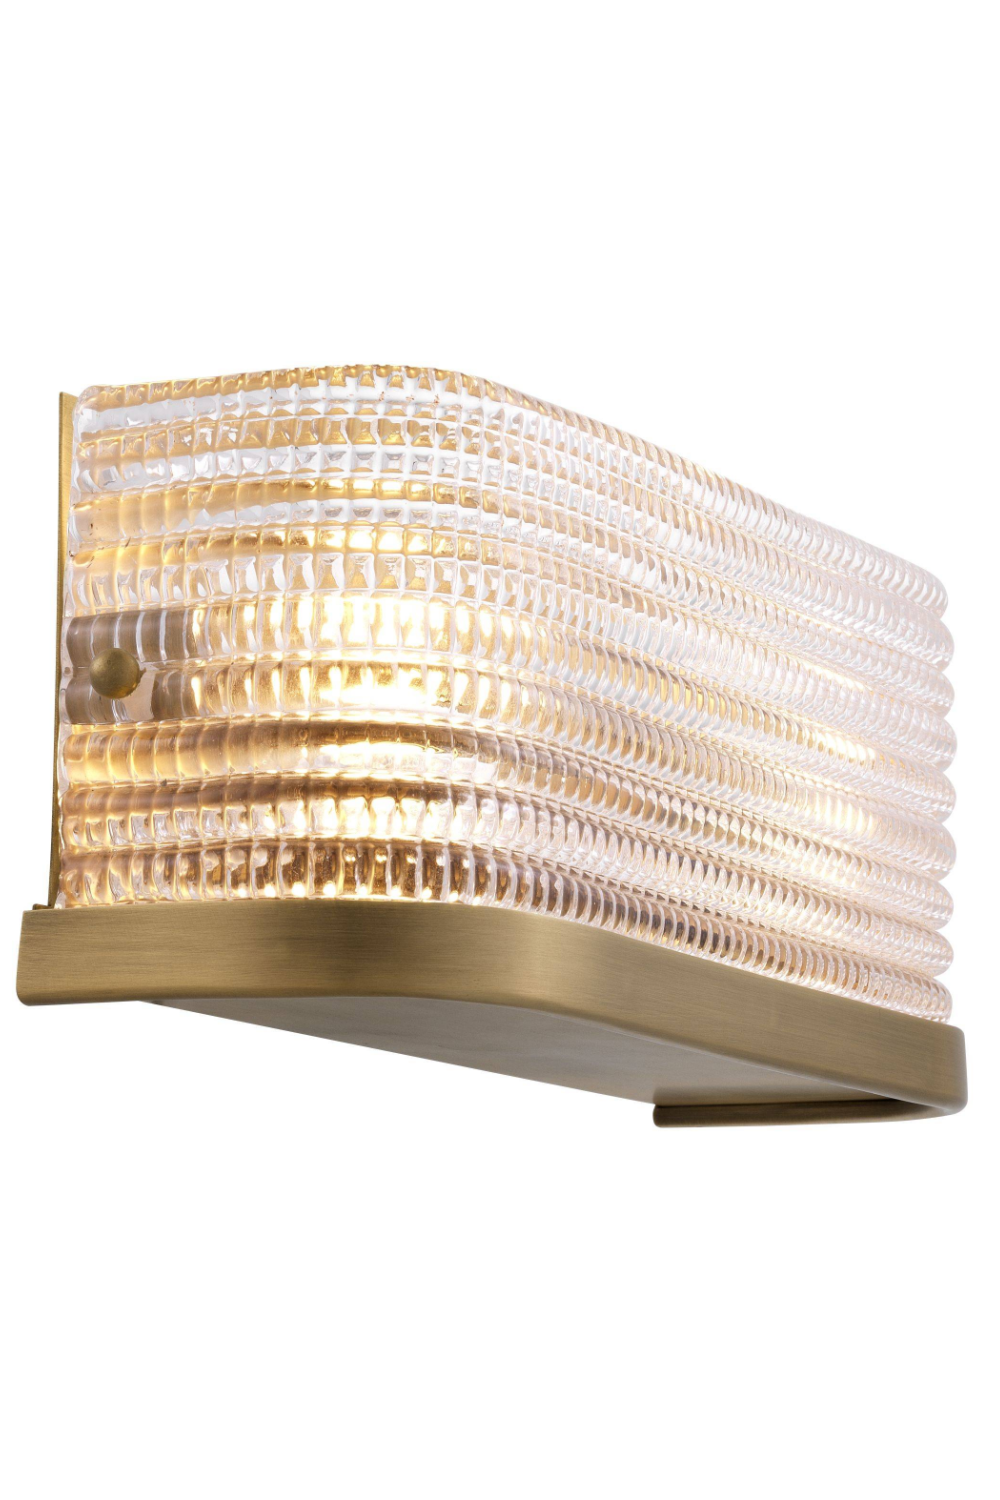 Curved Glass Wall Flush Mount | Eichholtz Culver | OROA Luxury Light